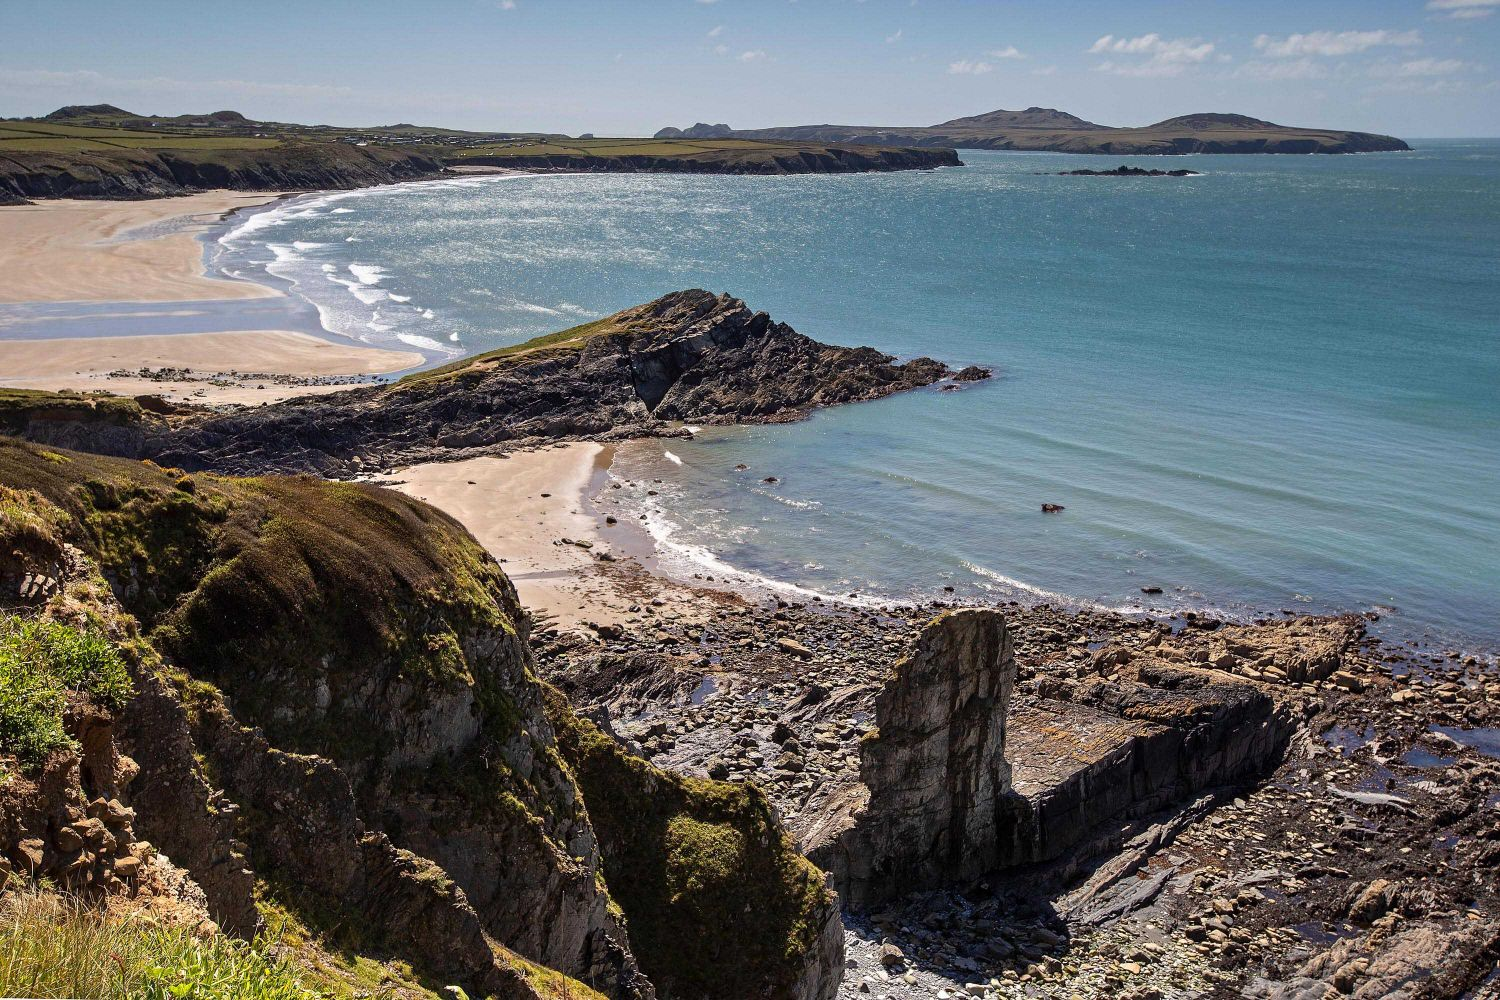 Looking back over Whitesands Beach to Ramsay Island near St David's, Pembrokeshire